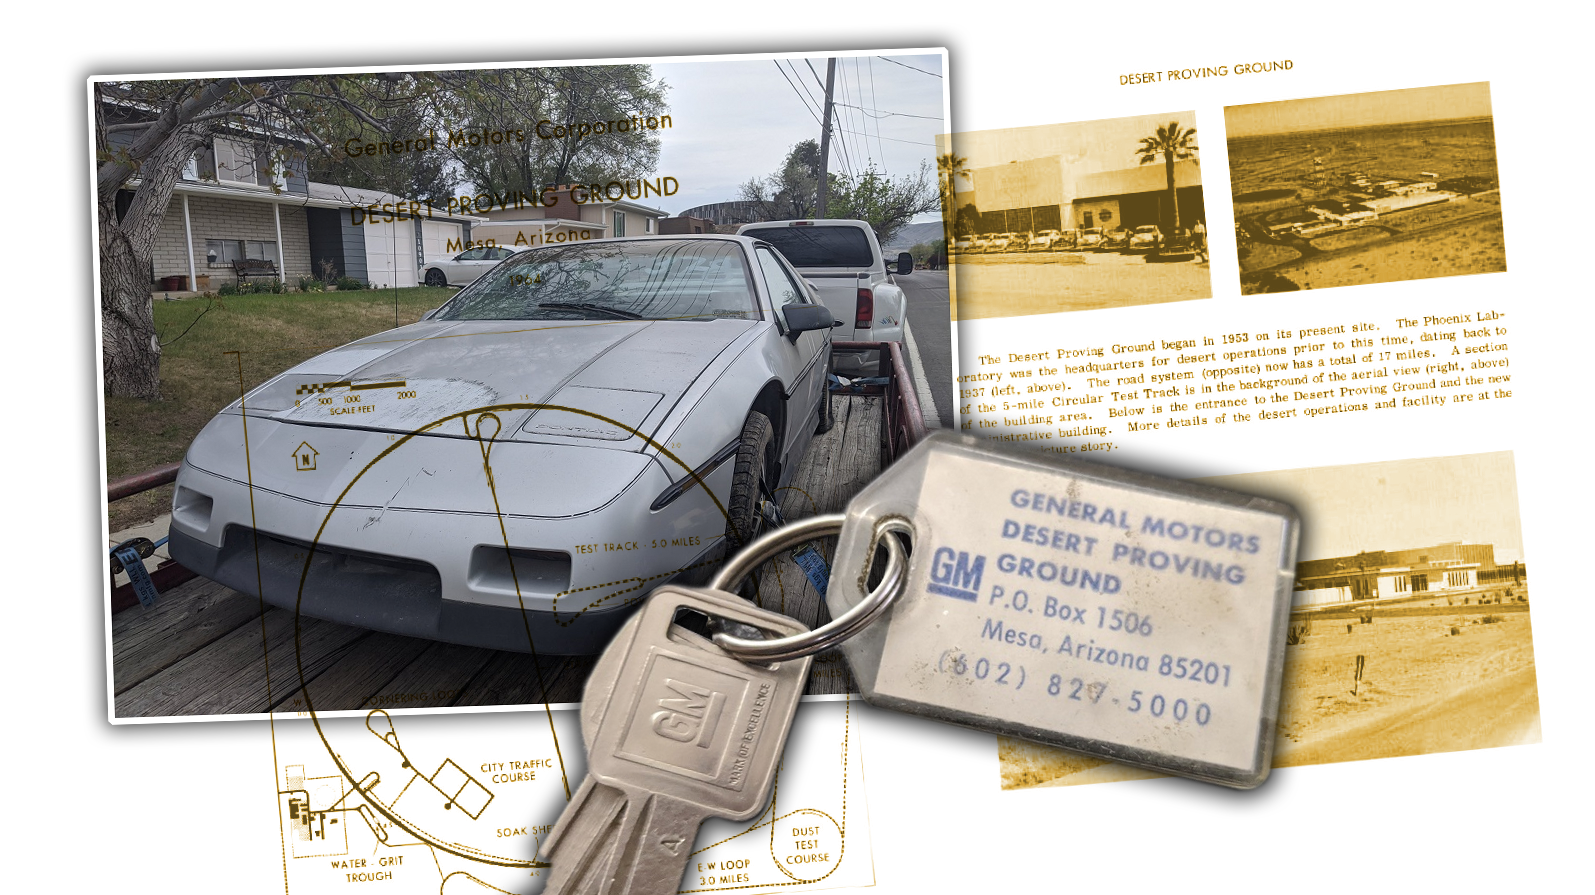 This $600 Junkyard Pontiac Fiero Was Once Used At GM's Desert Proving Ground And I'm Obsessed